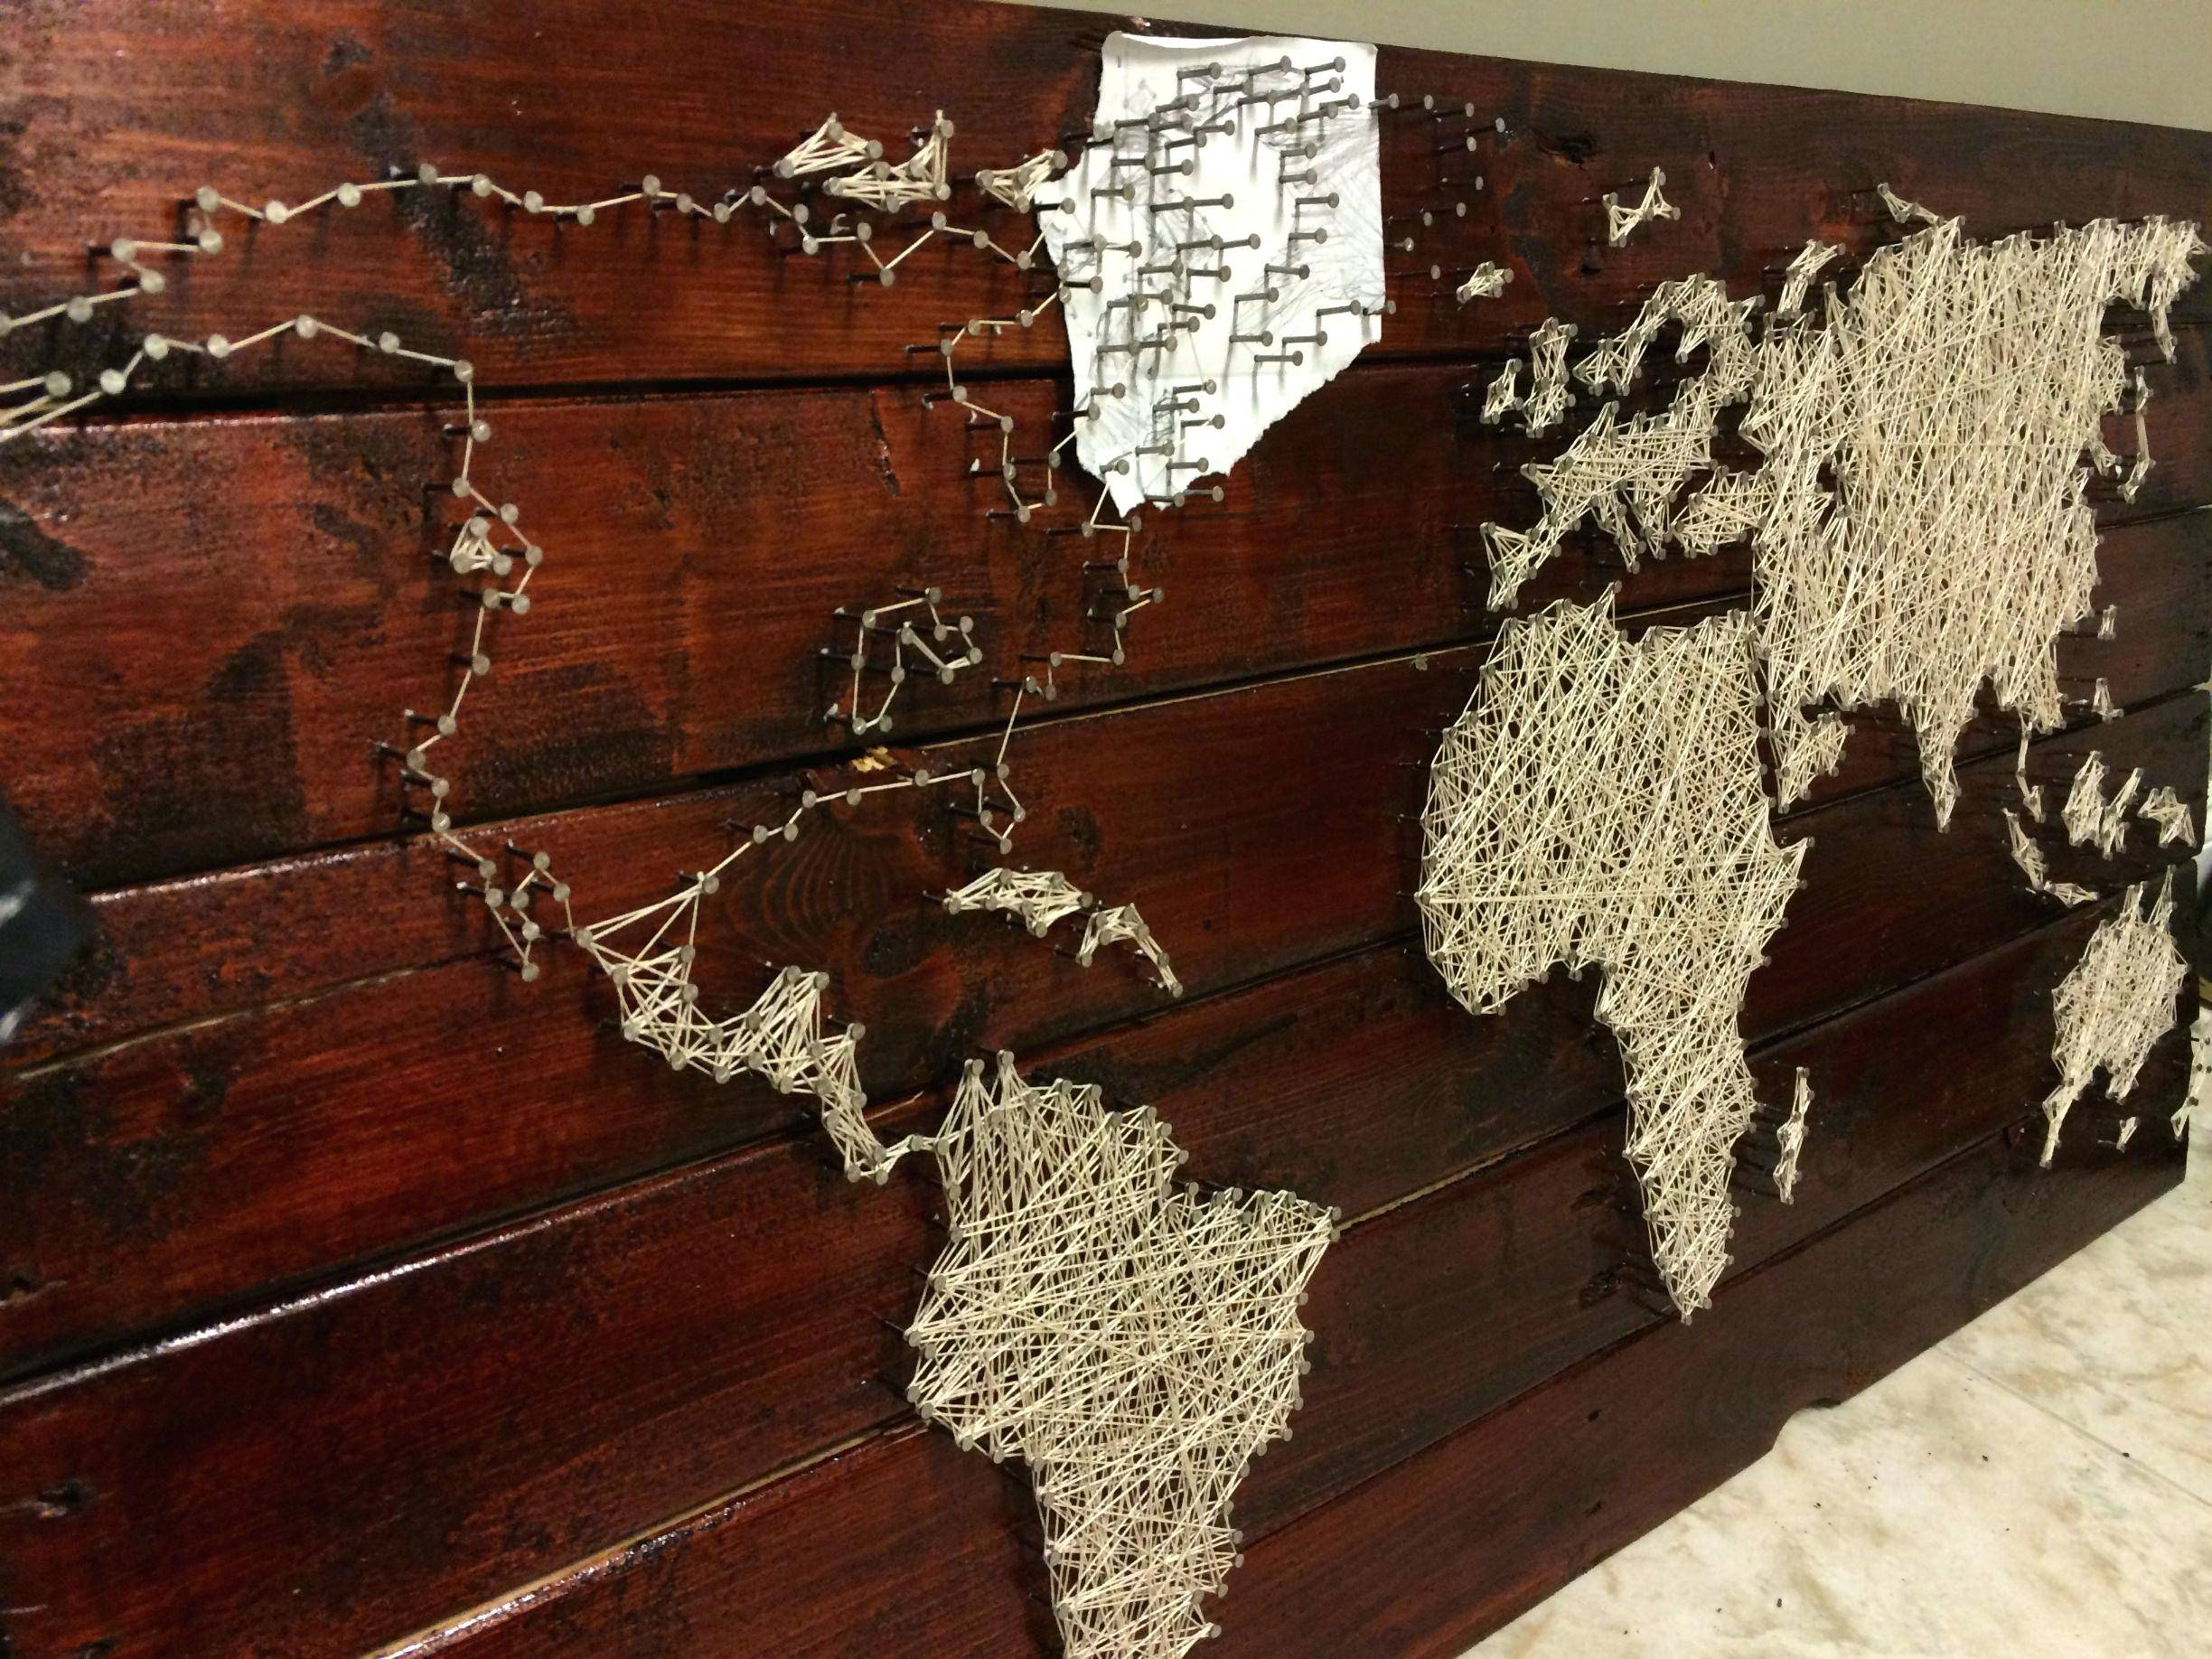 Wall Decor : 93 Compact Create Map Wall Art With A Pallet String Pertaining To Recent String Map Wall Art (View 19 of 20)